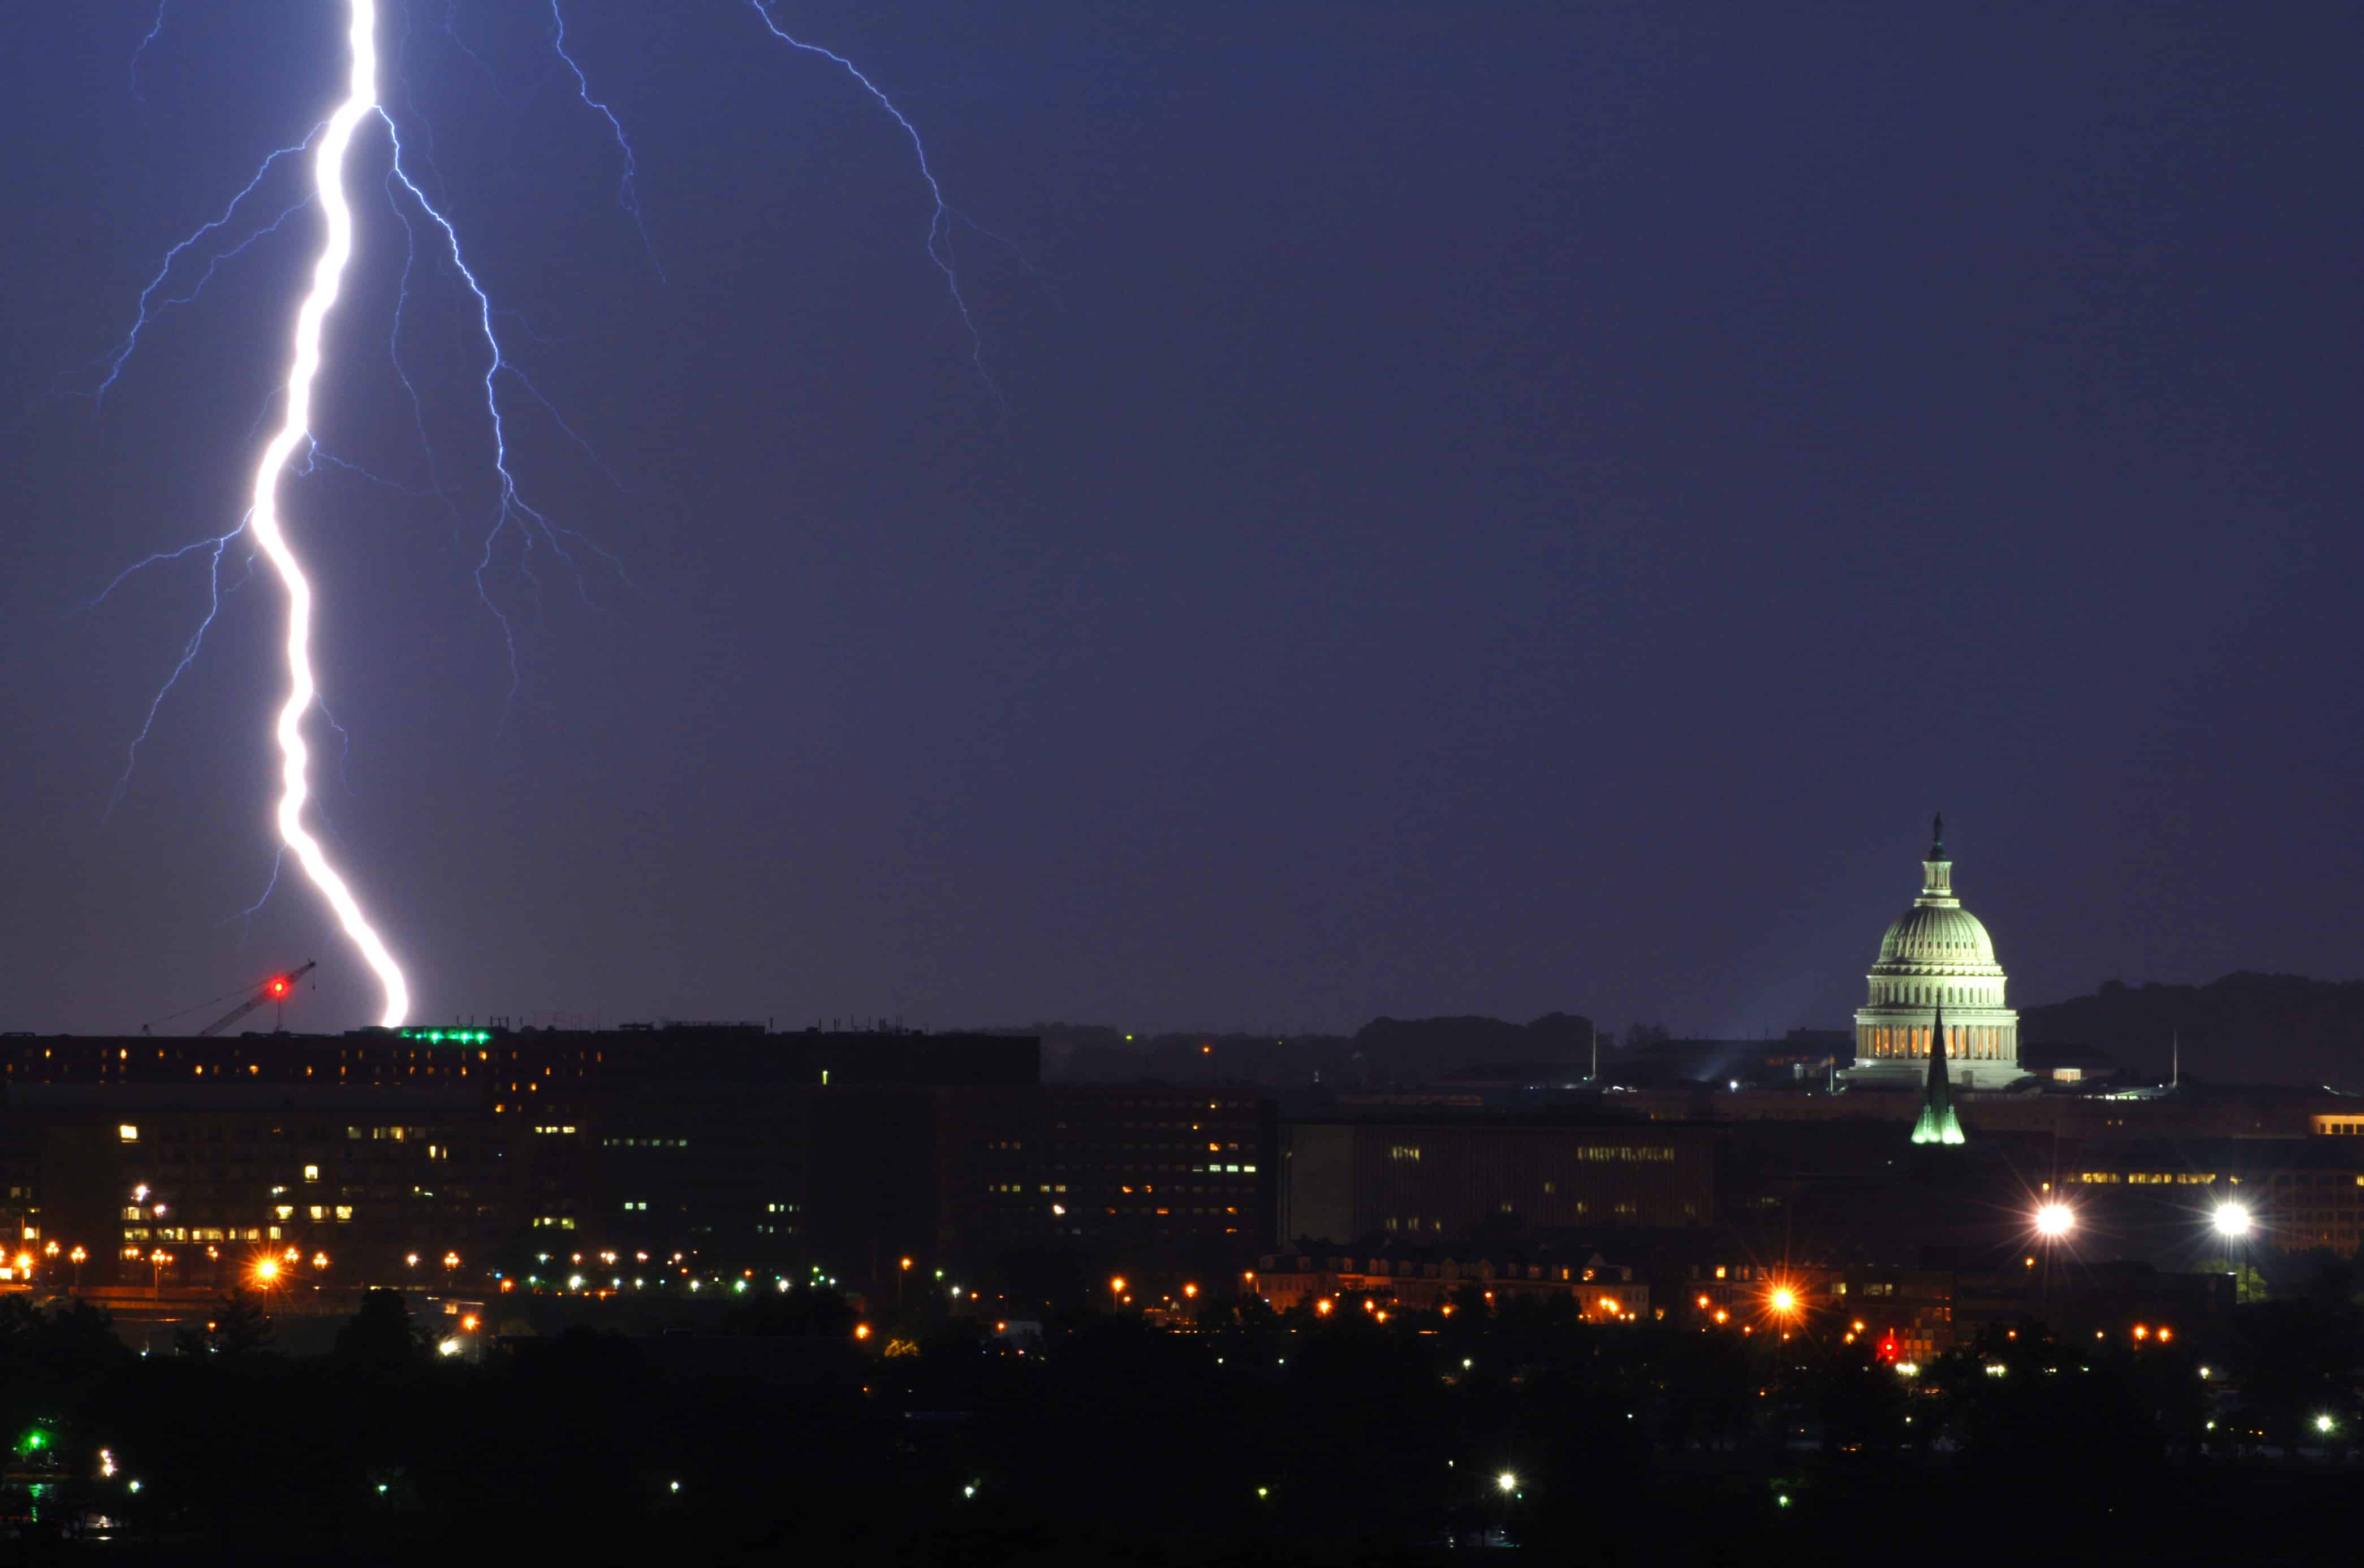 The National Weather Servicehas issueda Severe Thunderstorm Watchforthe City of Alexandria, Virginiaand the surrounding area until 11:00 p.m. this evening (Tuesday, May 15).